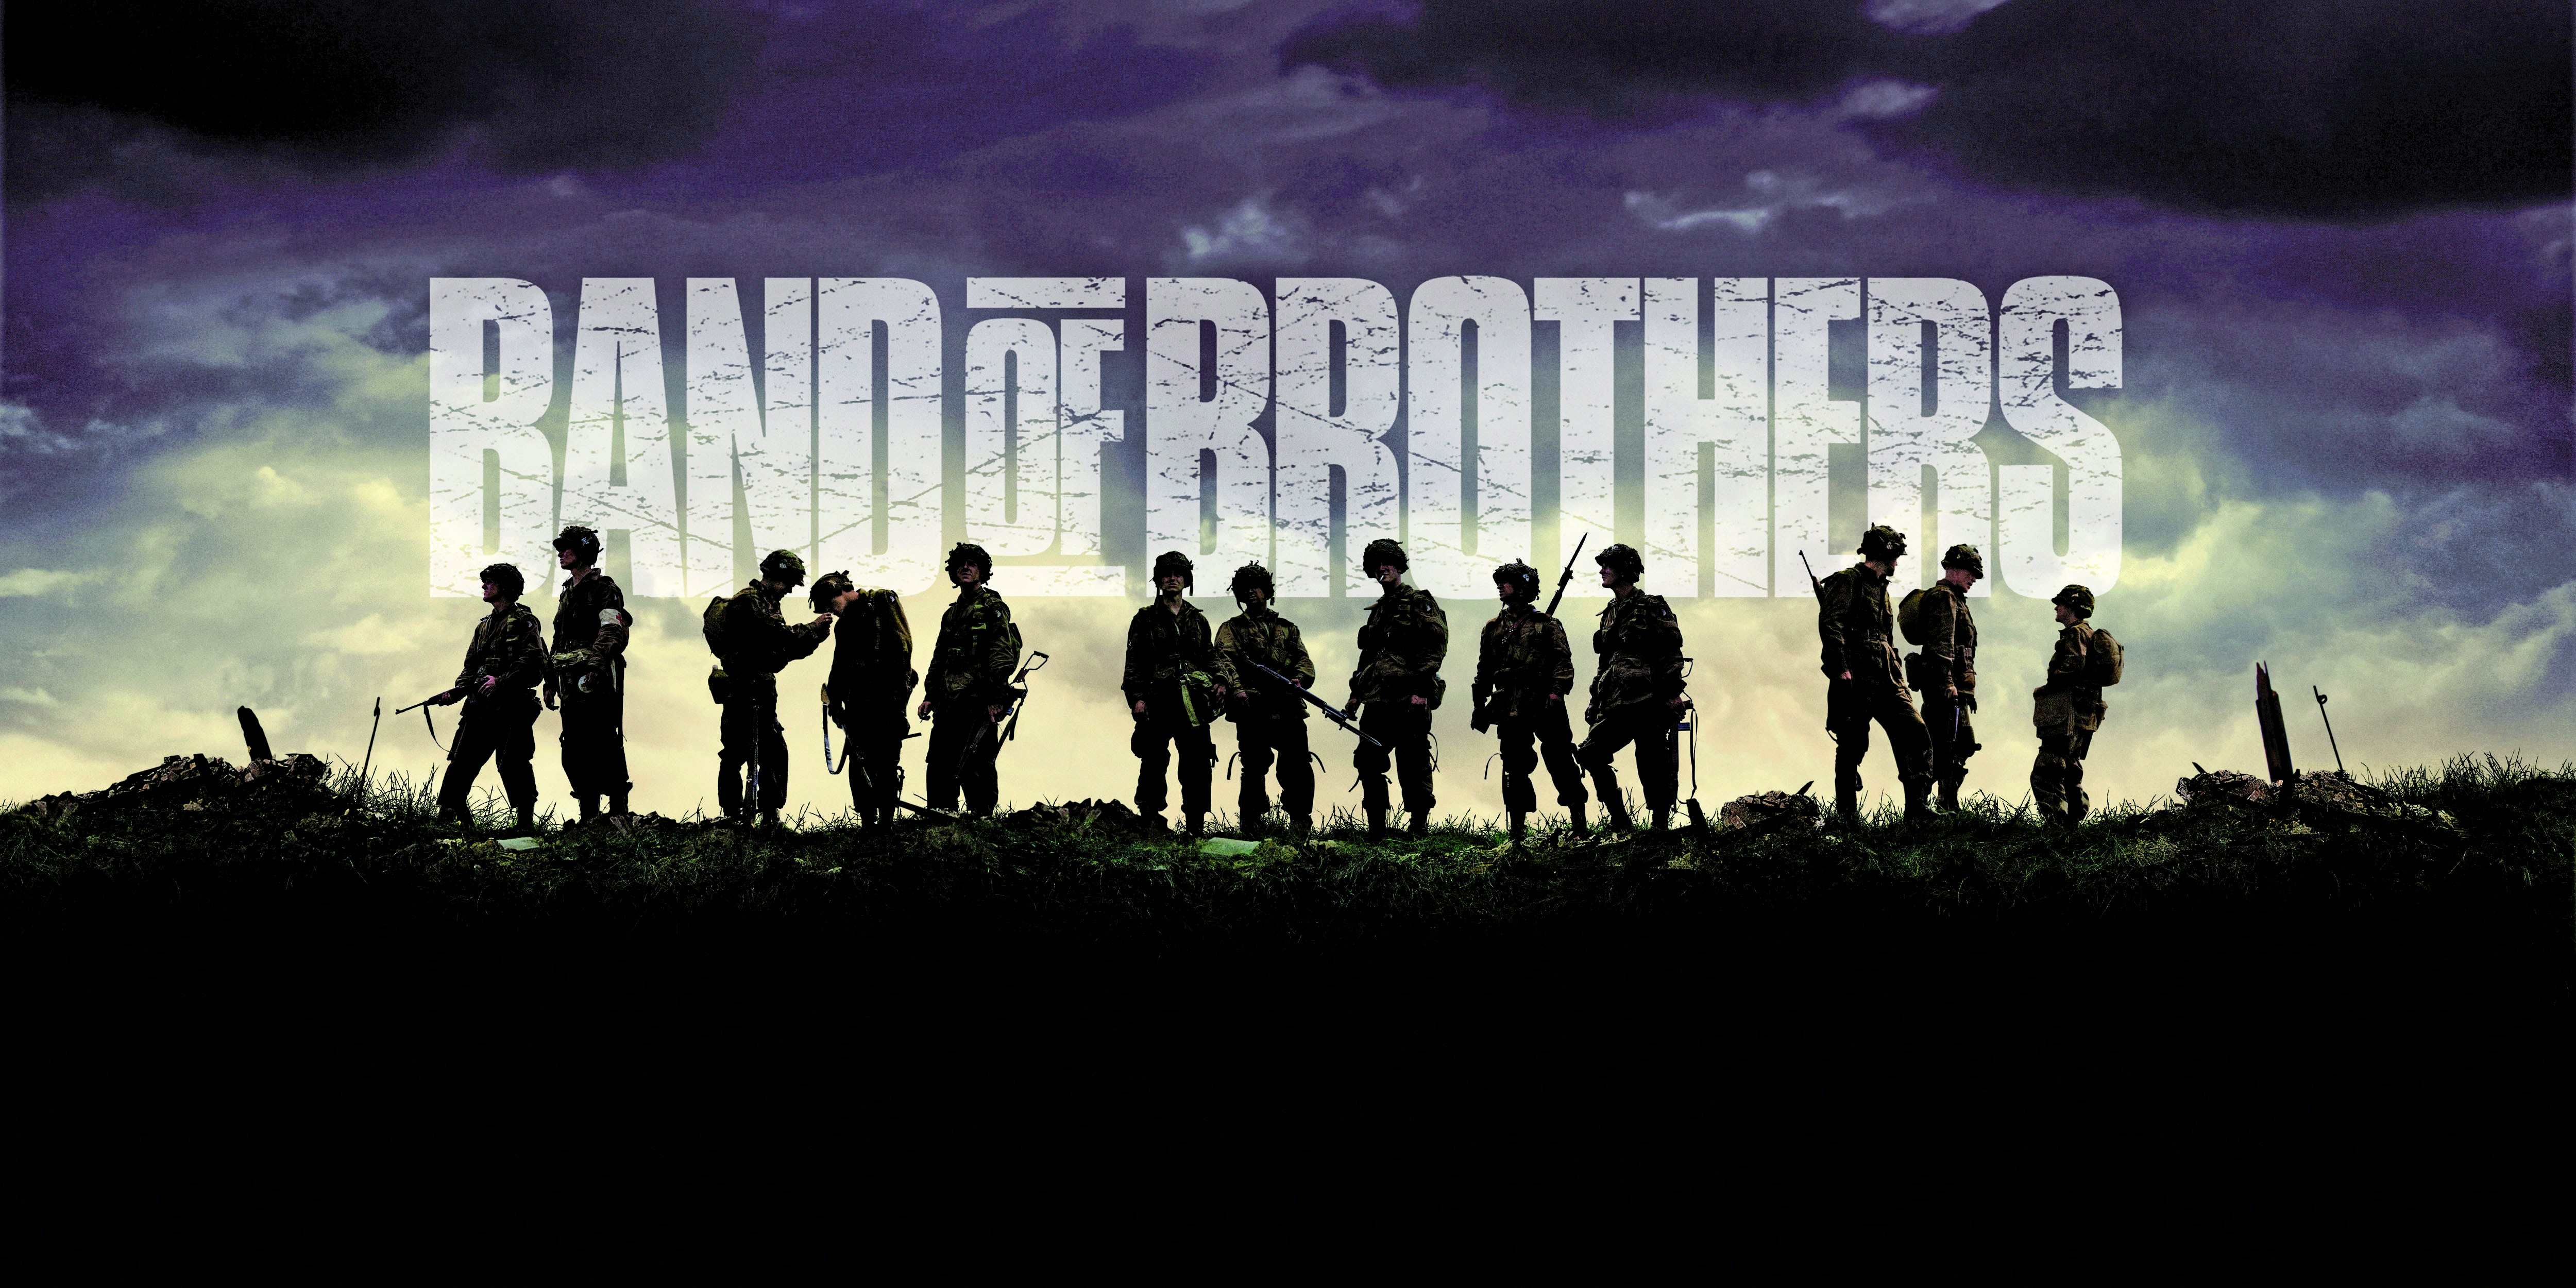 band of brothers, hd tv shows, 4k wallpapers, images, backgrounds